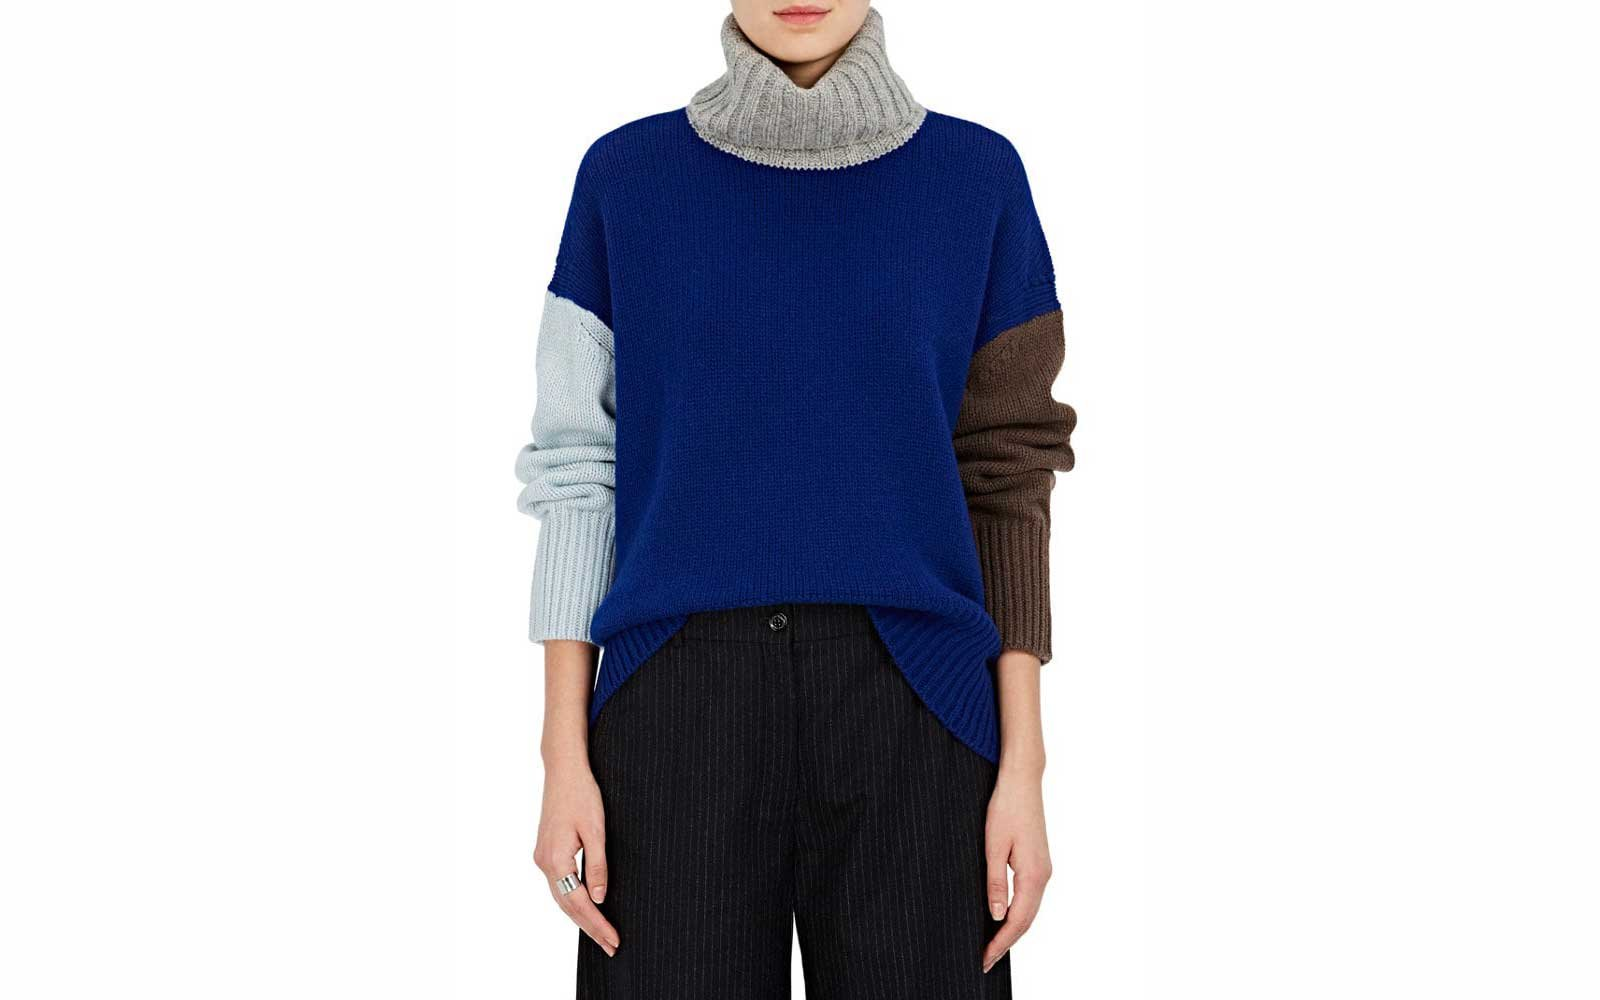 f680a86d366 22 Cute Oversized Sweaters for Women | Travel + Leisure